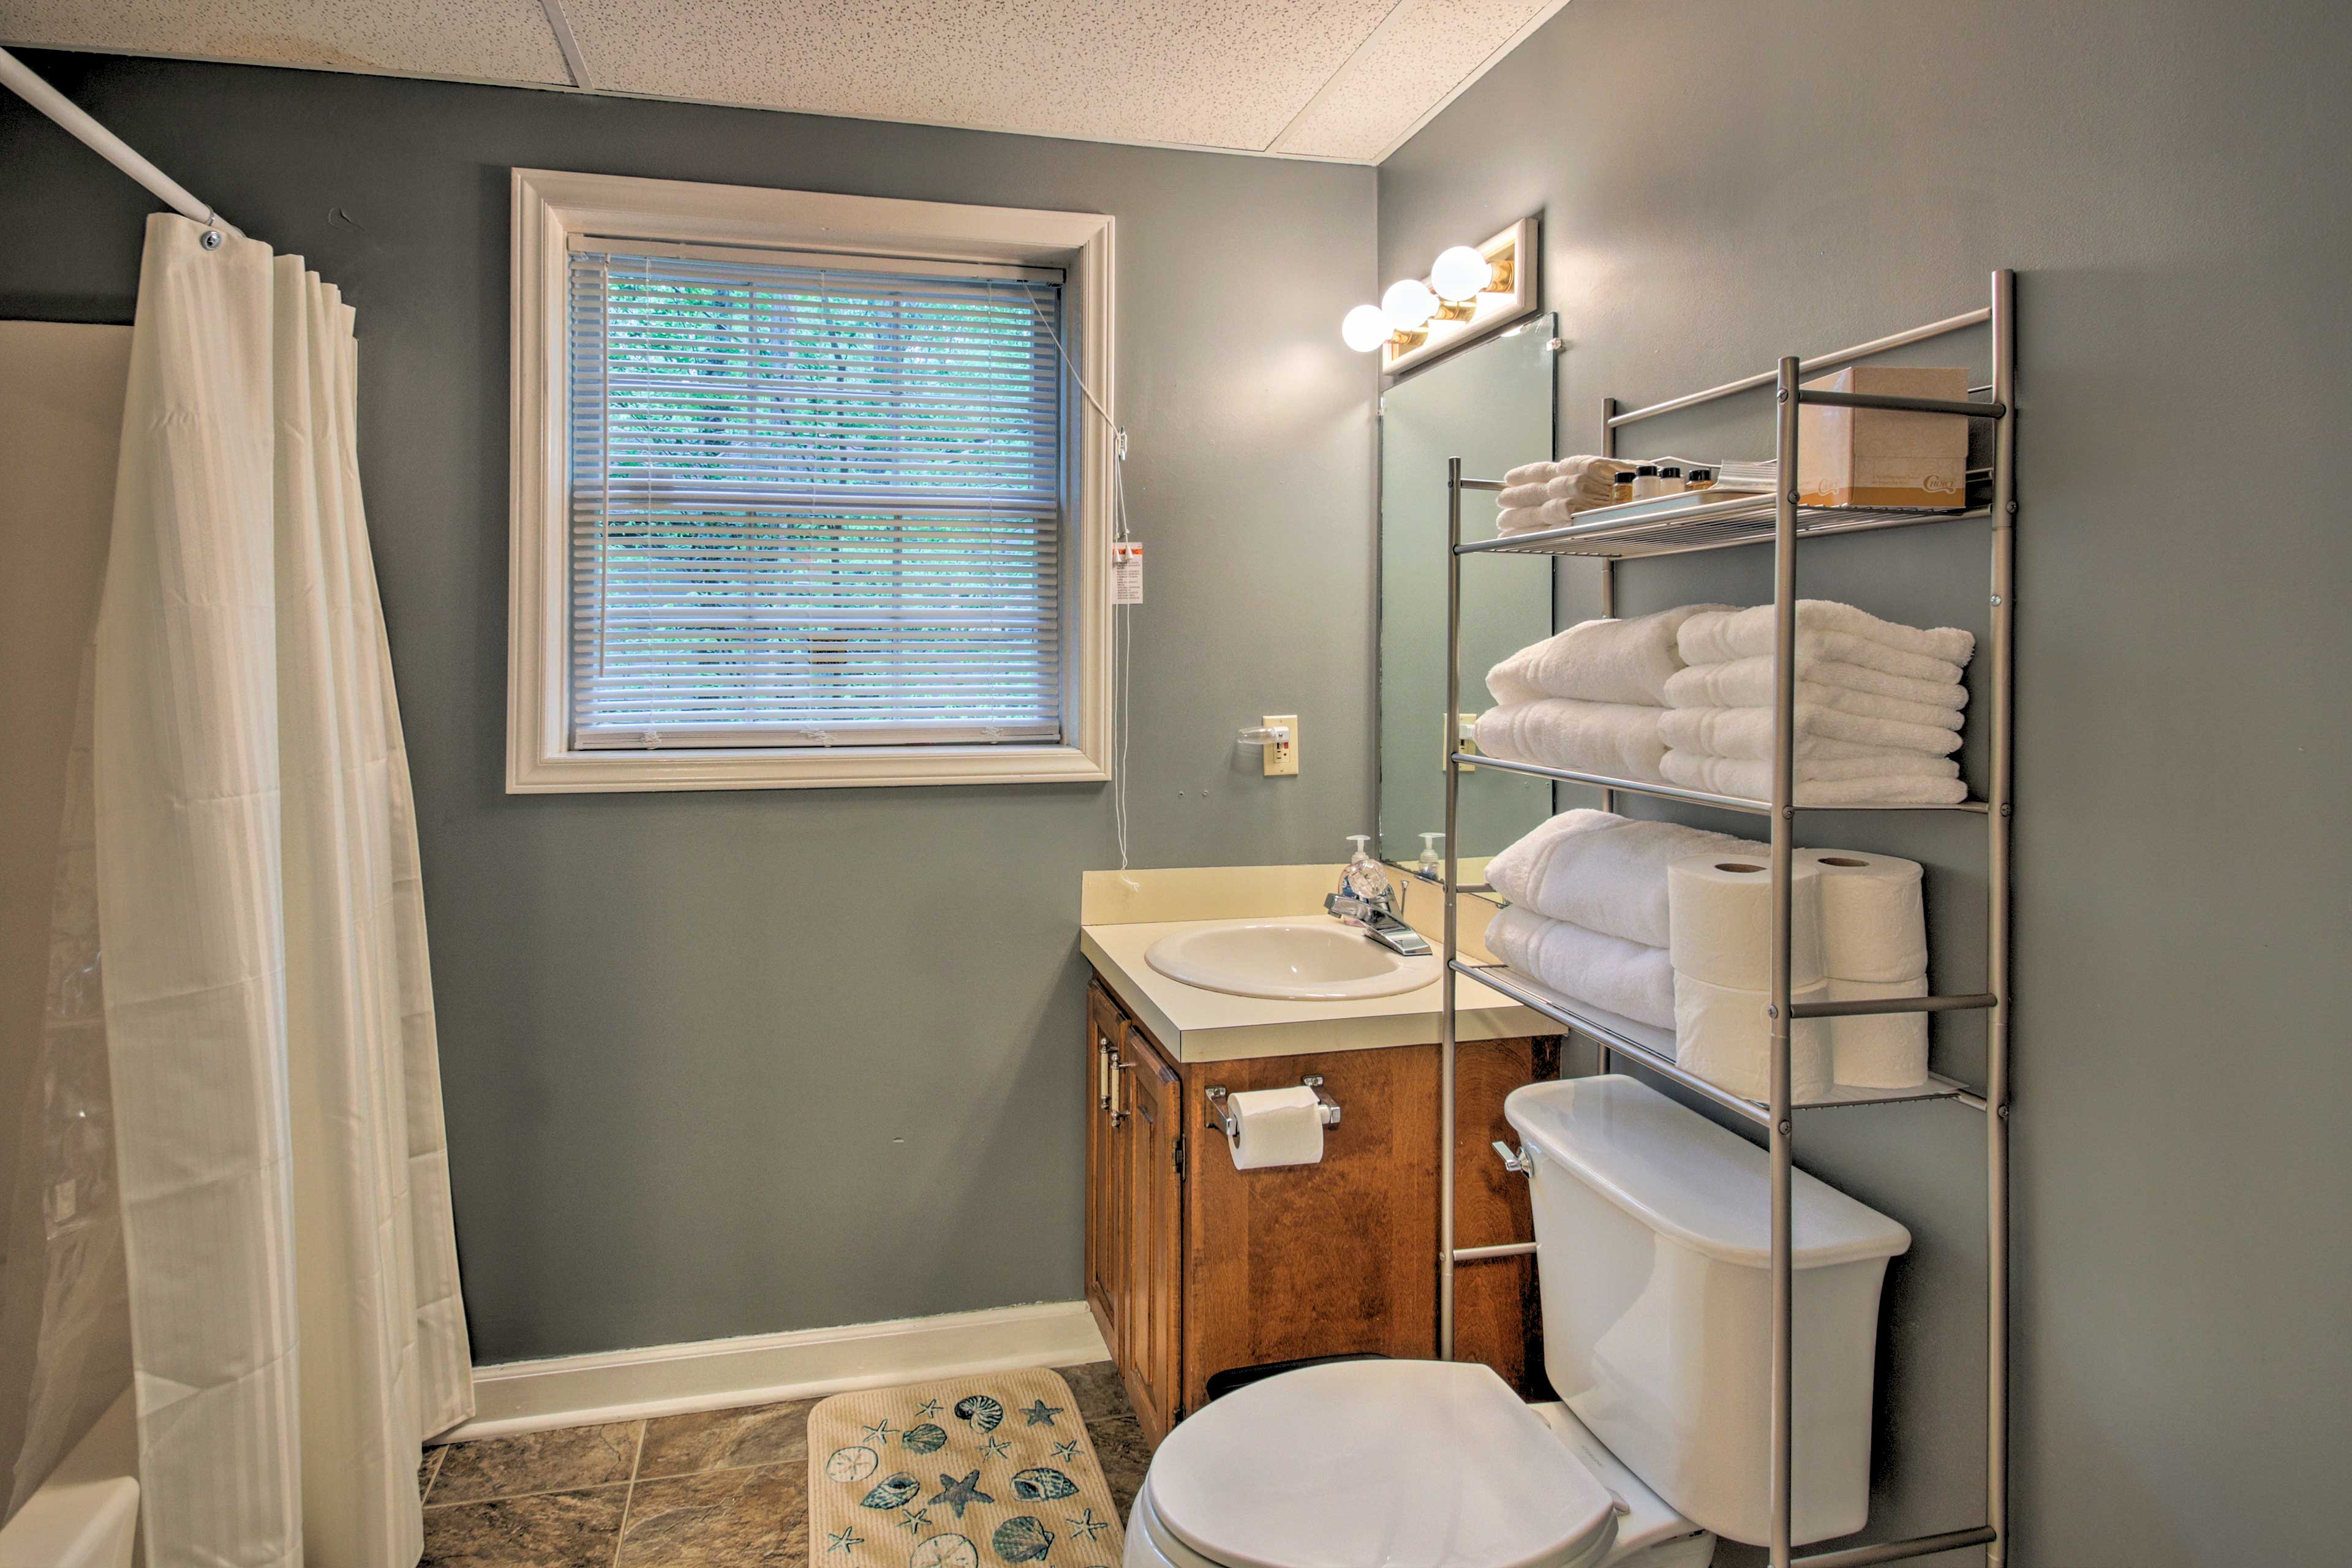 Morning routines will be a breeze using the 3 full bathrooms.